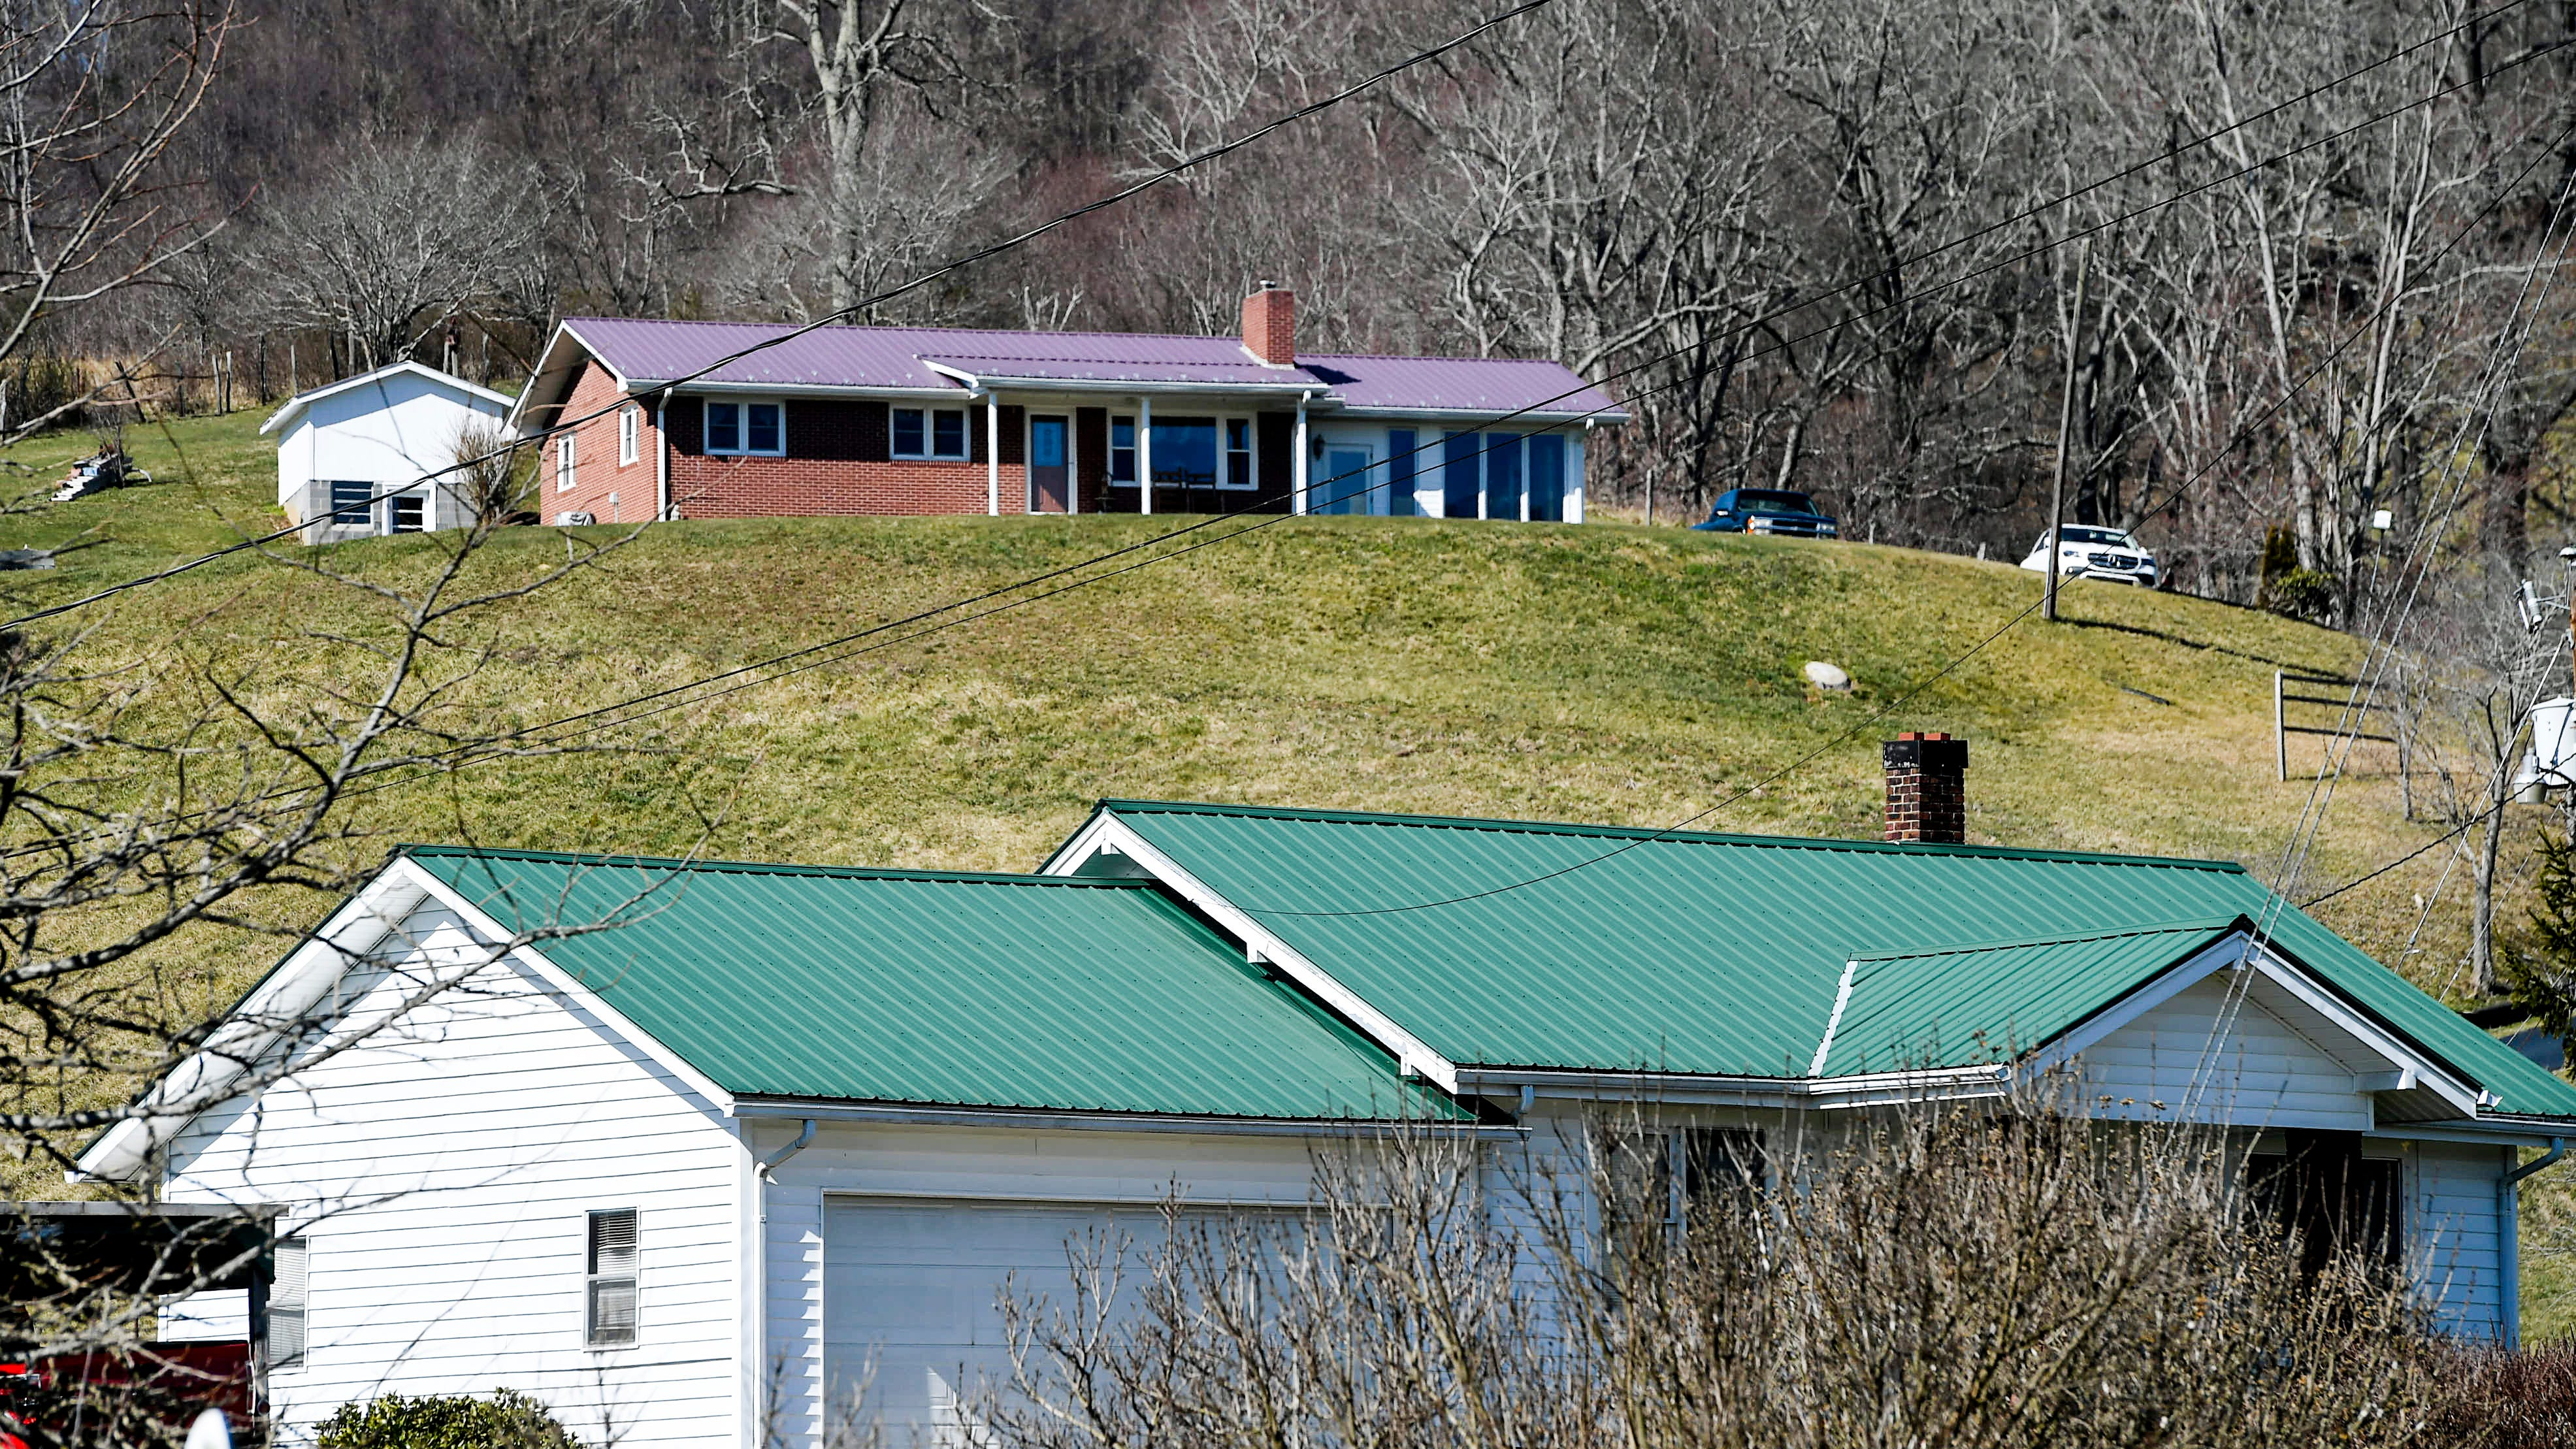 Homes in Waynesville March 8, 2021.